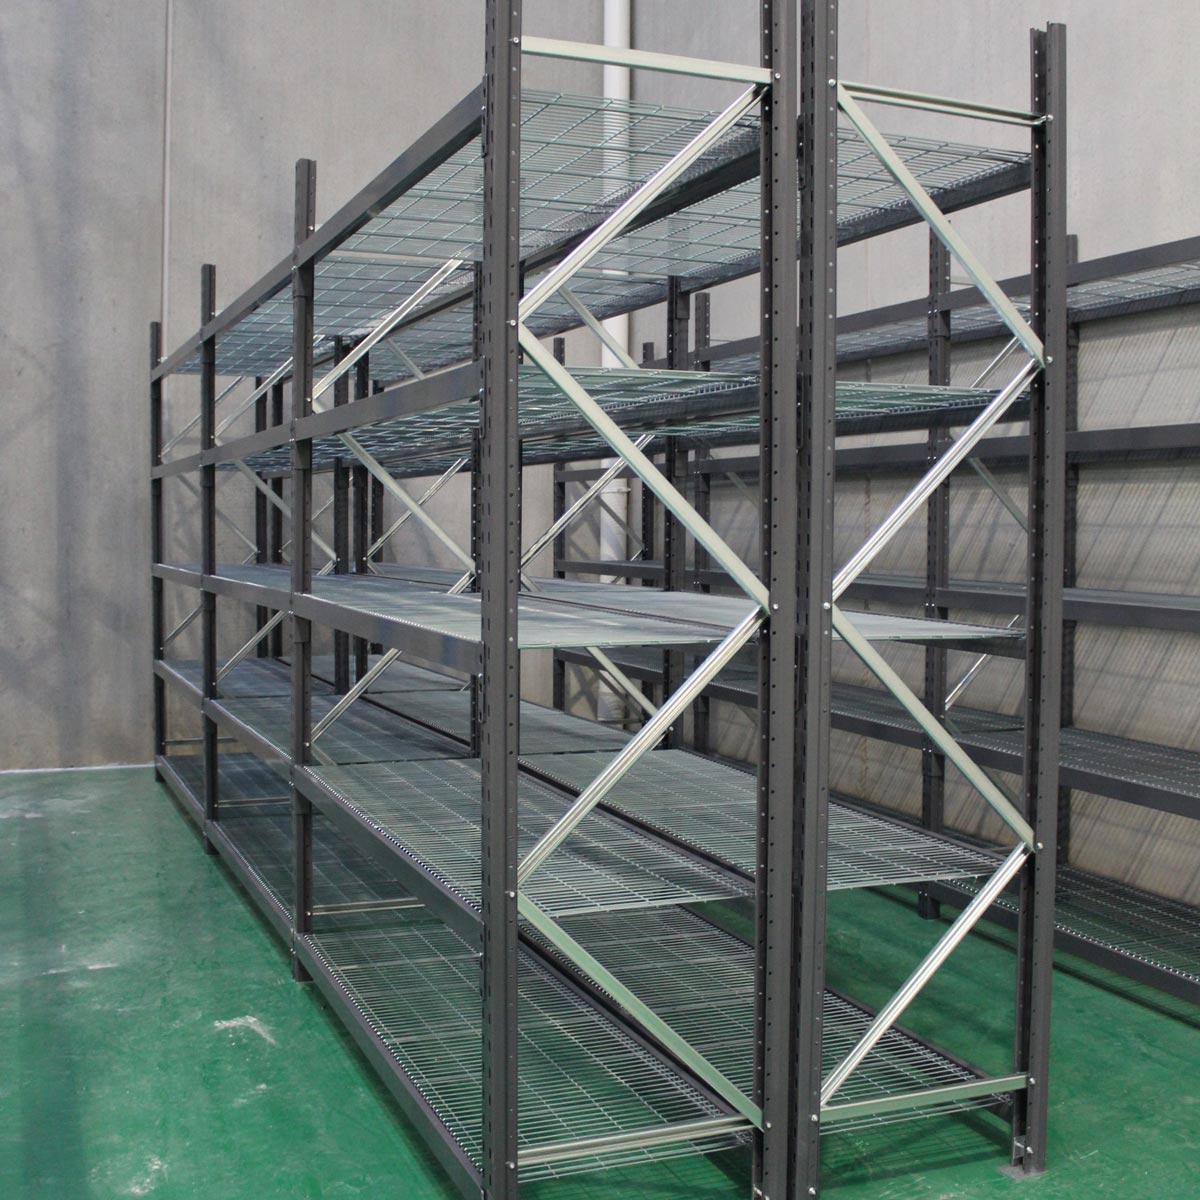 Longspan Shelving Unit with Mesh Deck